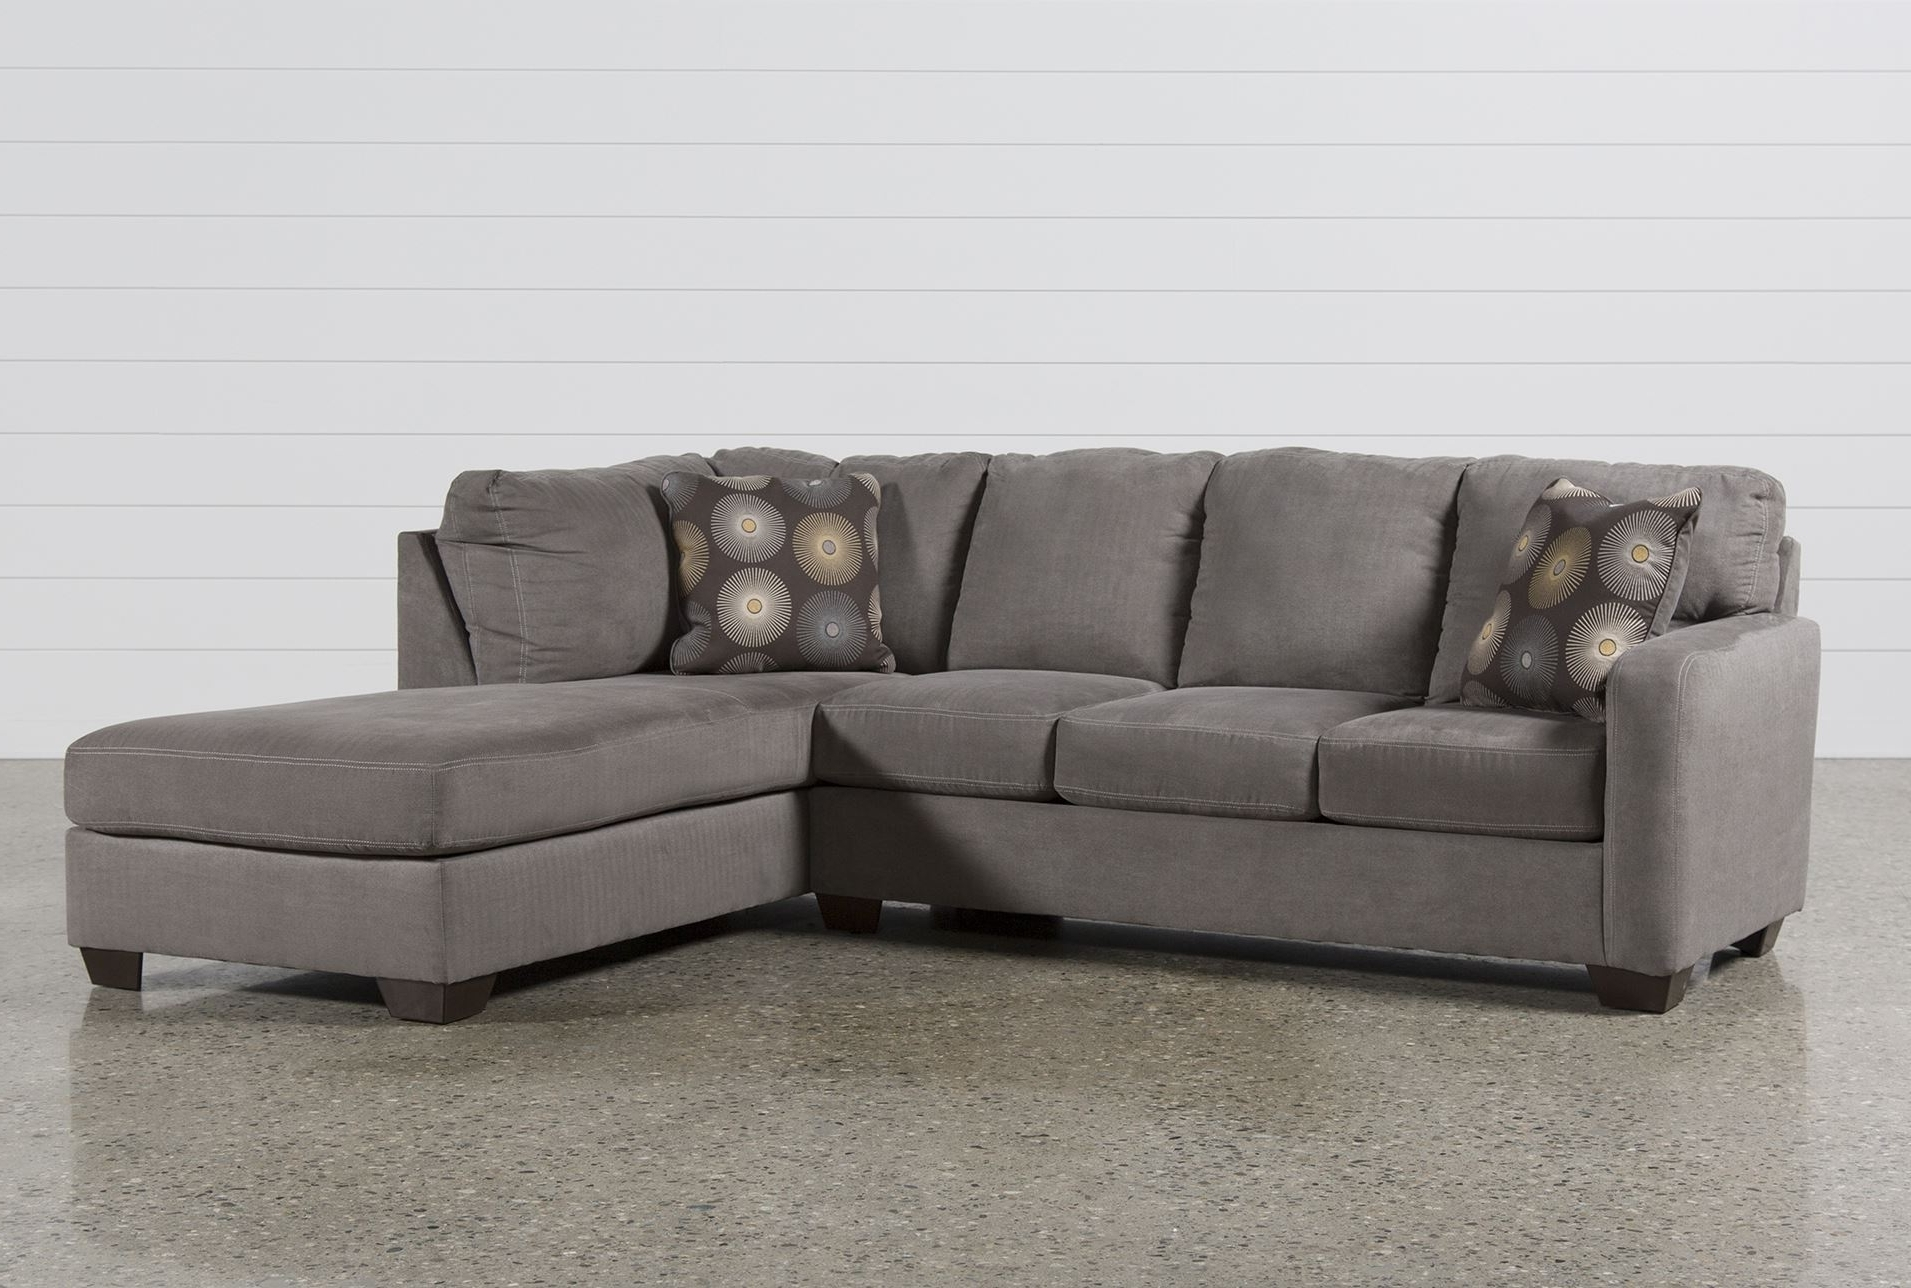 Latest Living Spaces Sectional Sofas In Best 2 Piece Sectional Sofa 23 For Your Living Room Sofa Ideas (View 5 of 20)